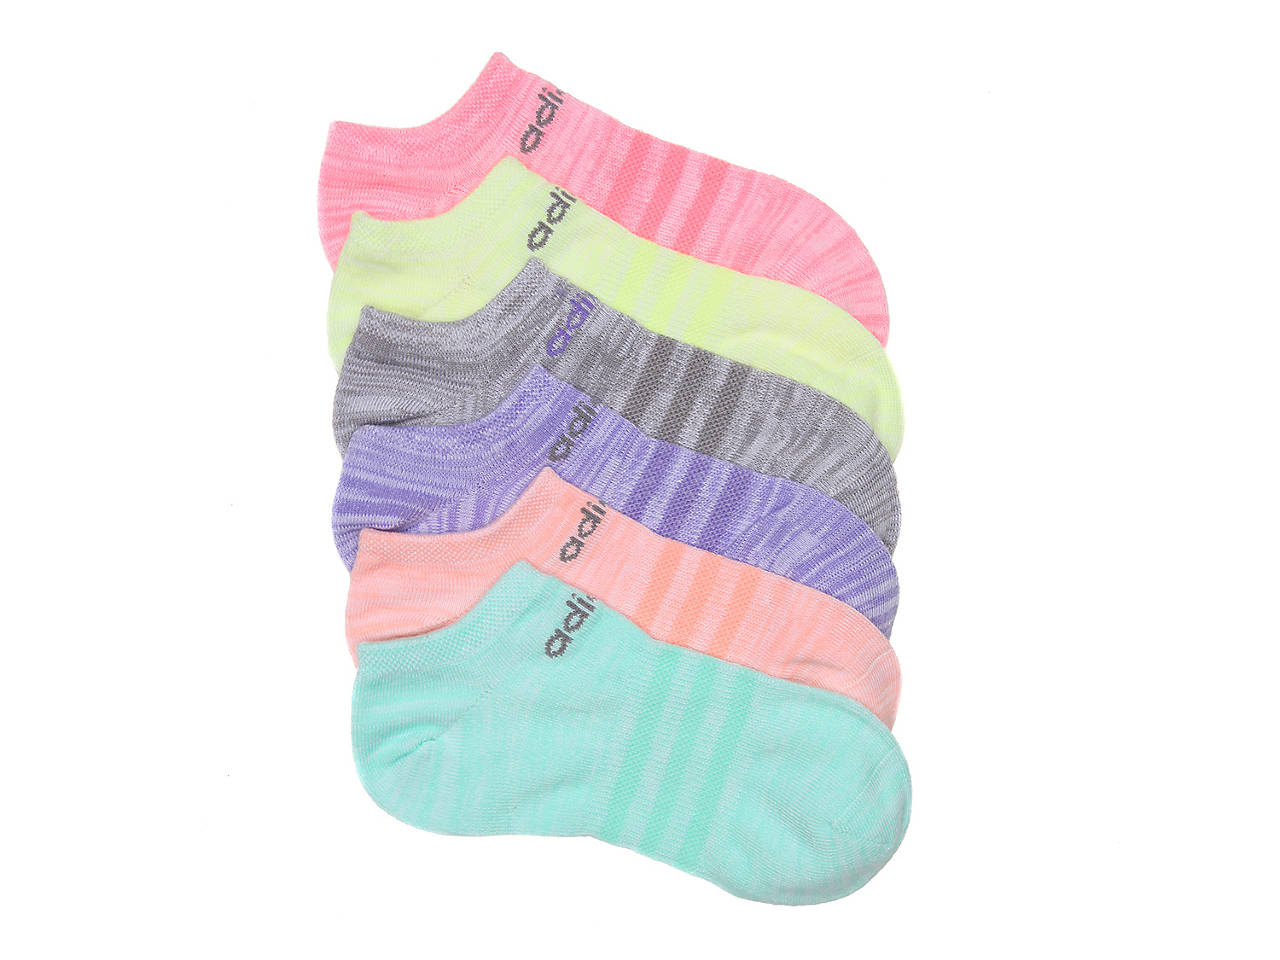 f46d92570590 adidas Superlite Climalite Toddler   Youth No Show Socks - 6 Pack ...